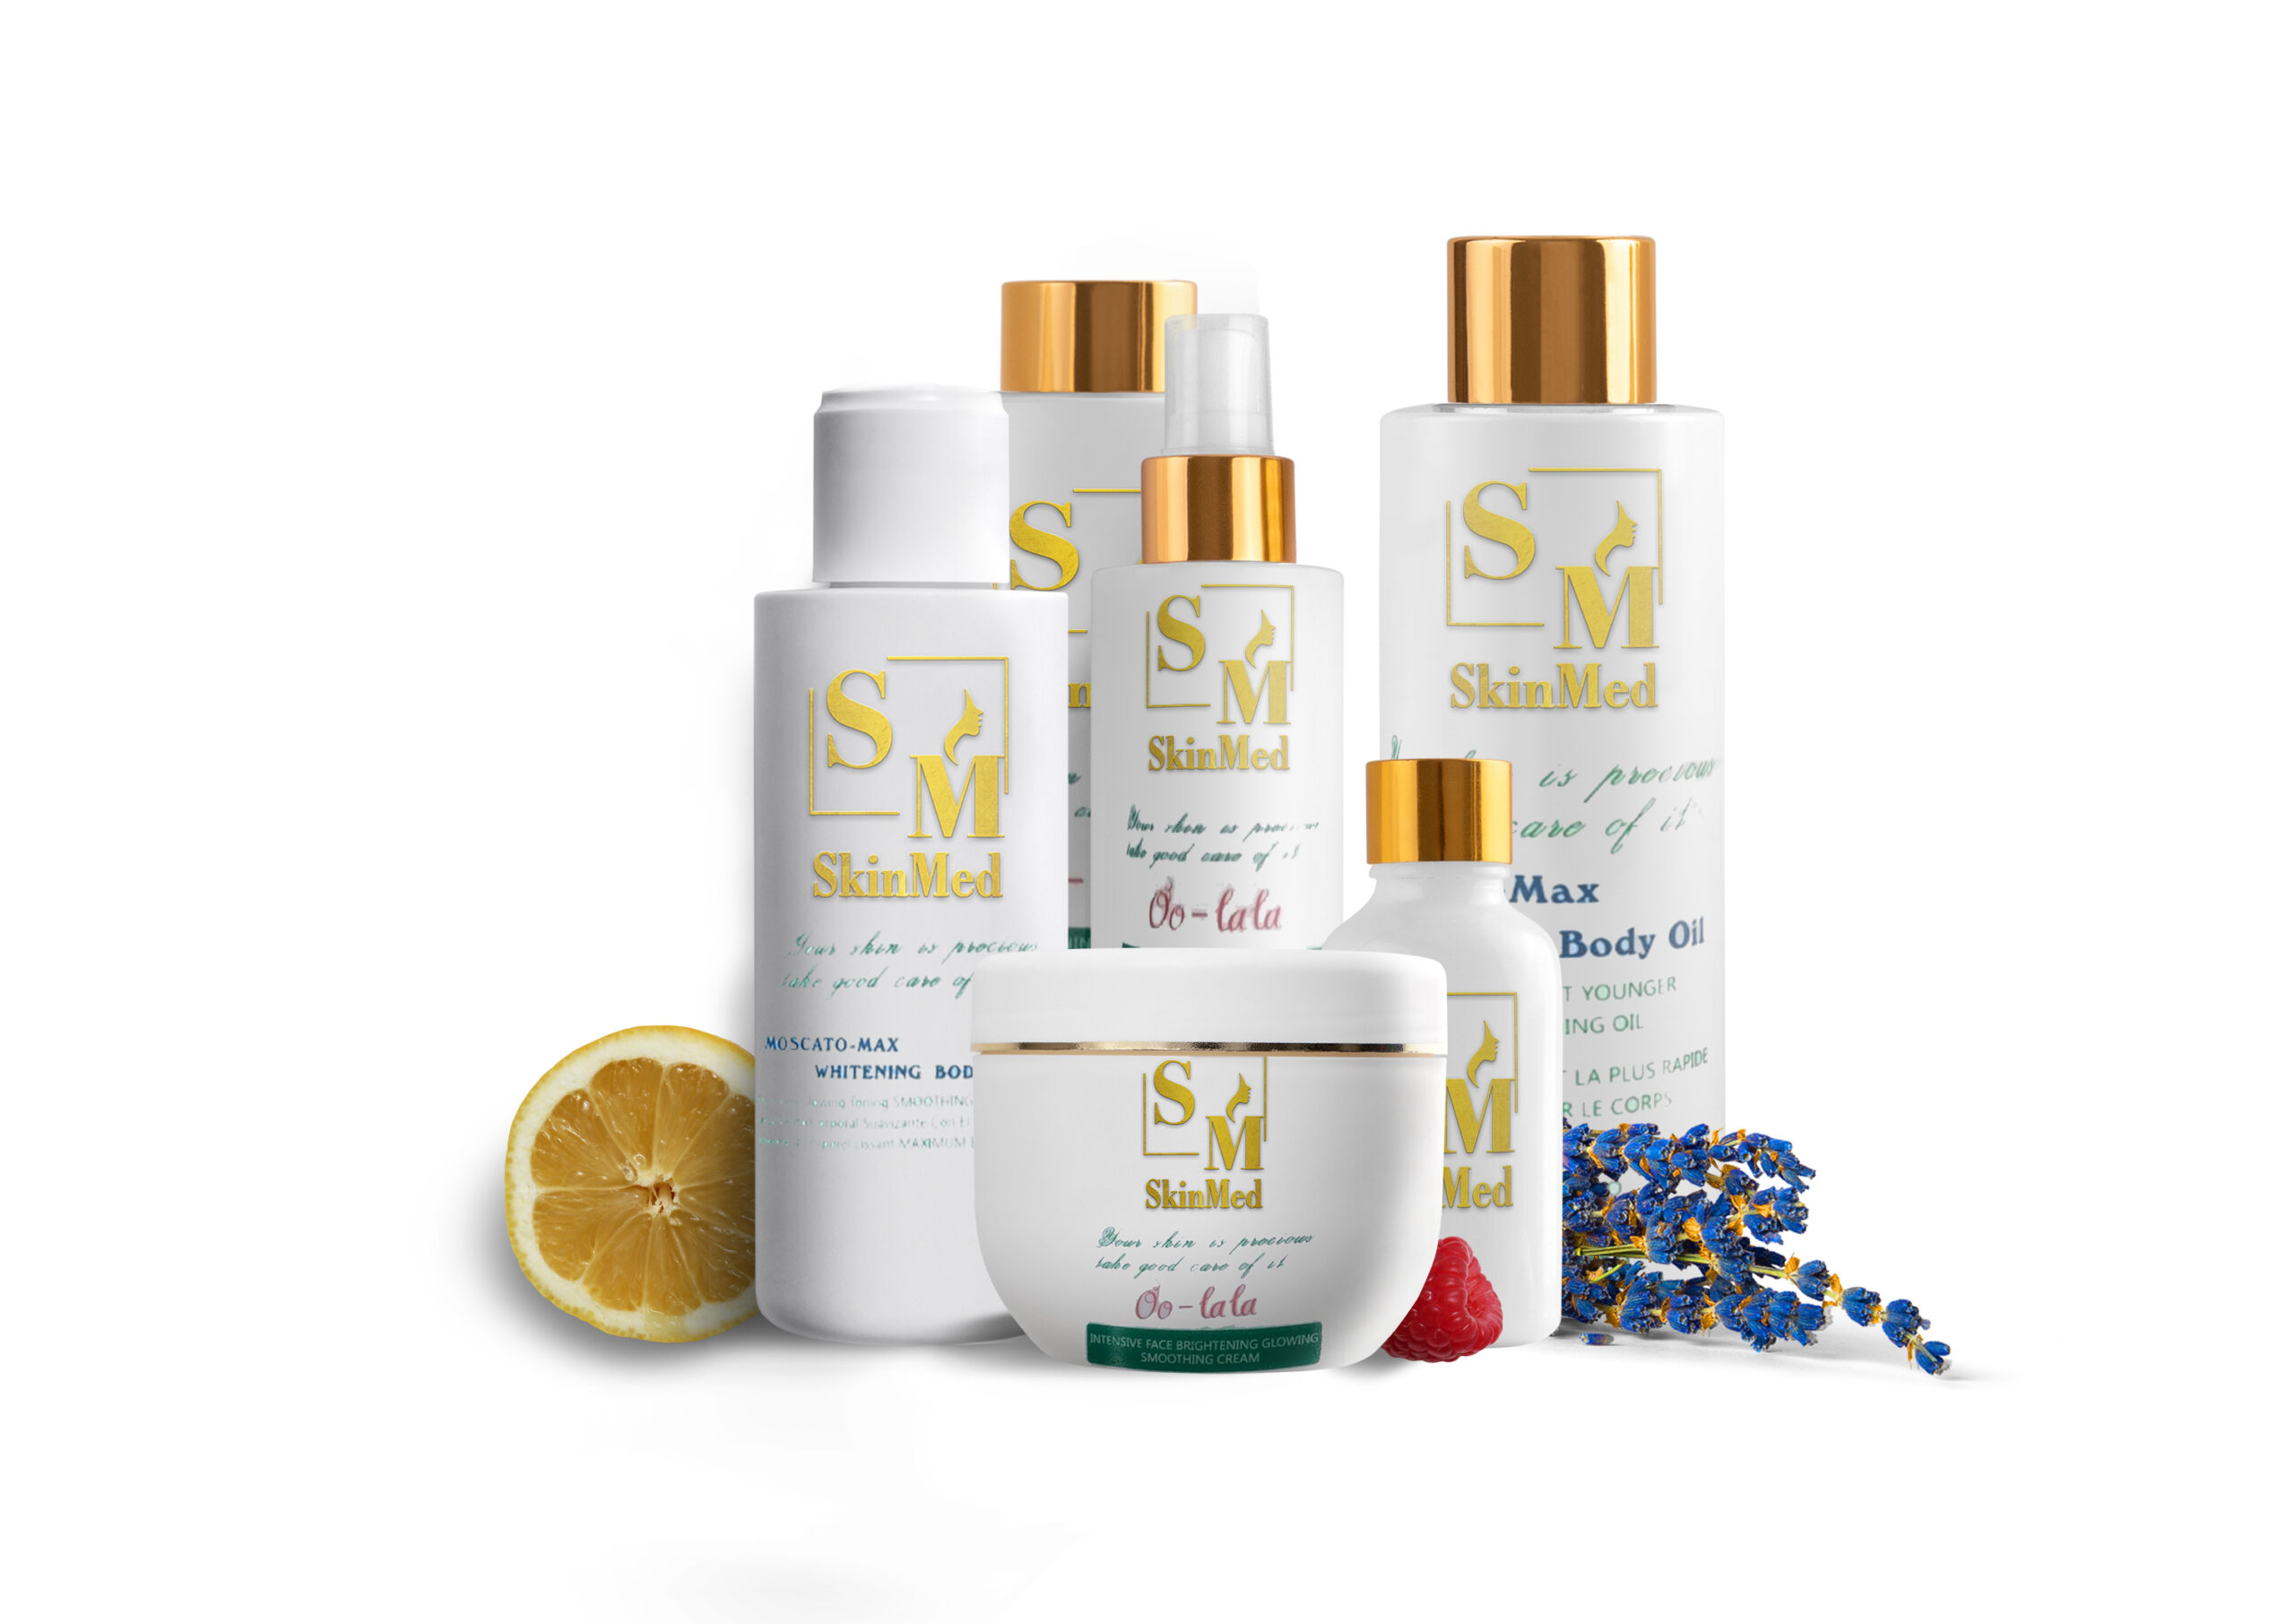 SKIN MED COLLECTIONS